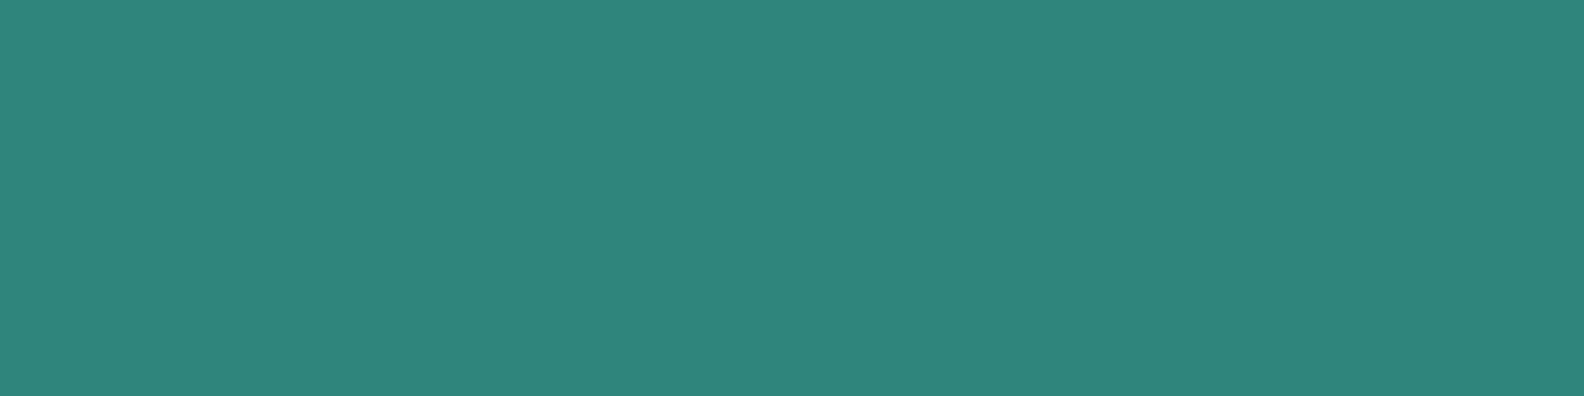 1584x396 Celadon Green Solid Color Background